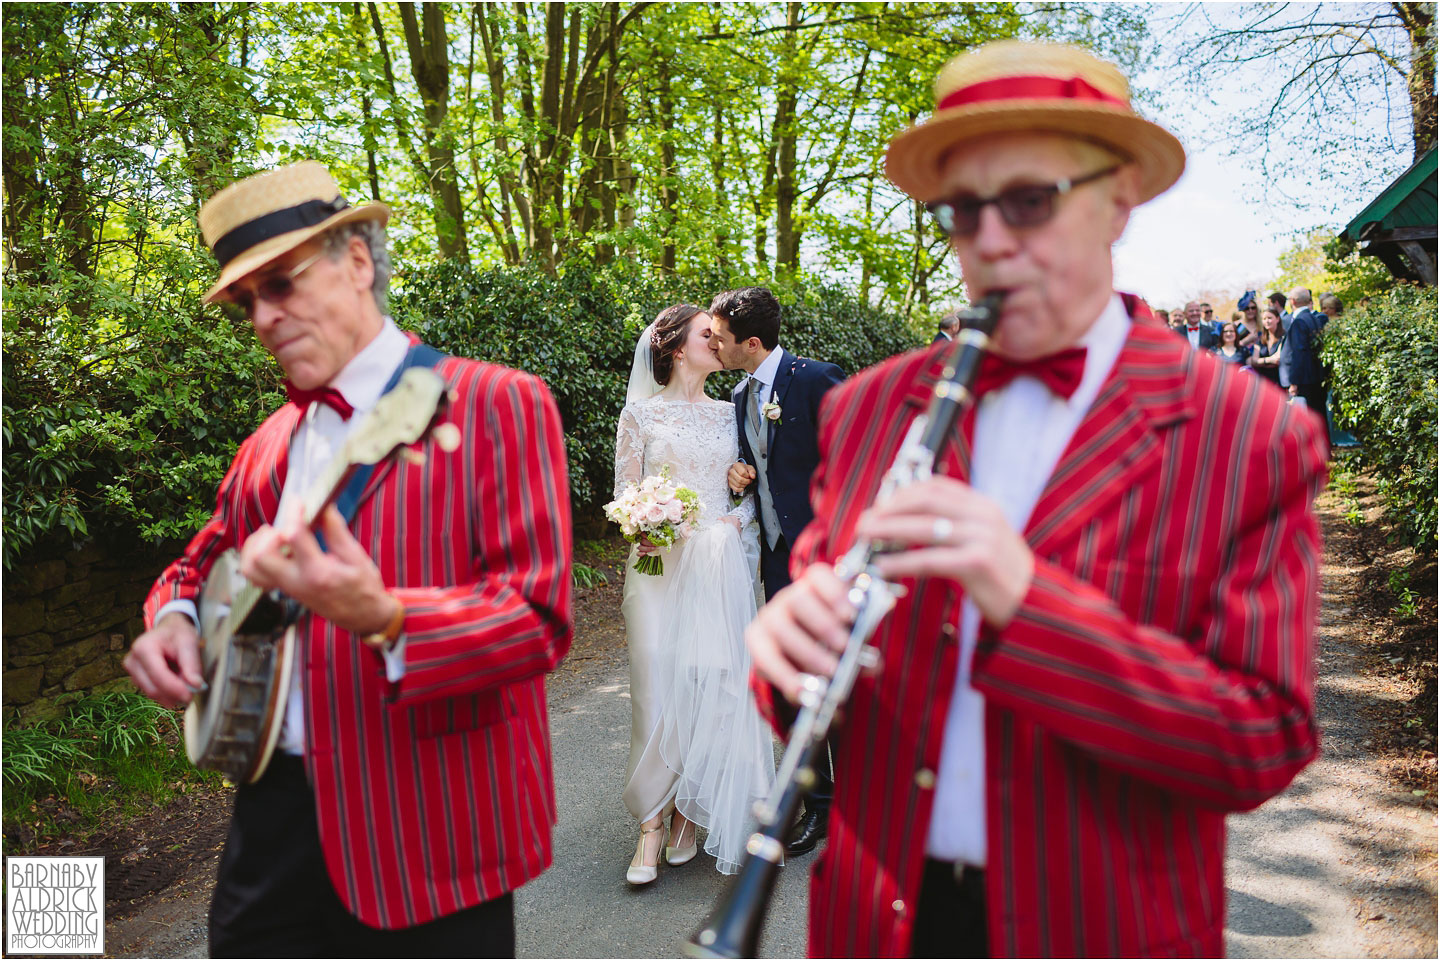 Yorkshire jazz band wedding procession, Denton Hall an exclusive country house in Ilkley in West Yorkshire